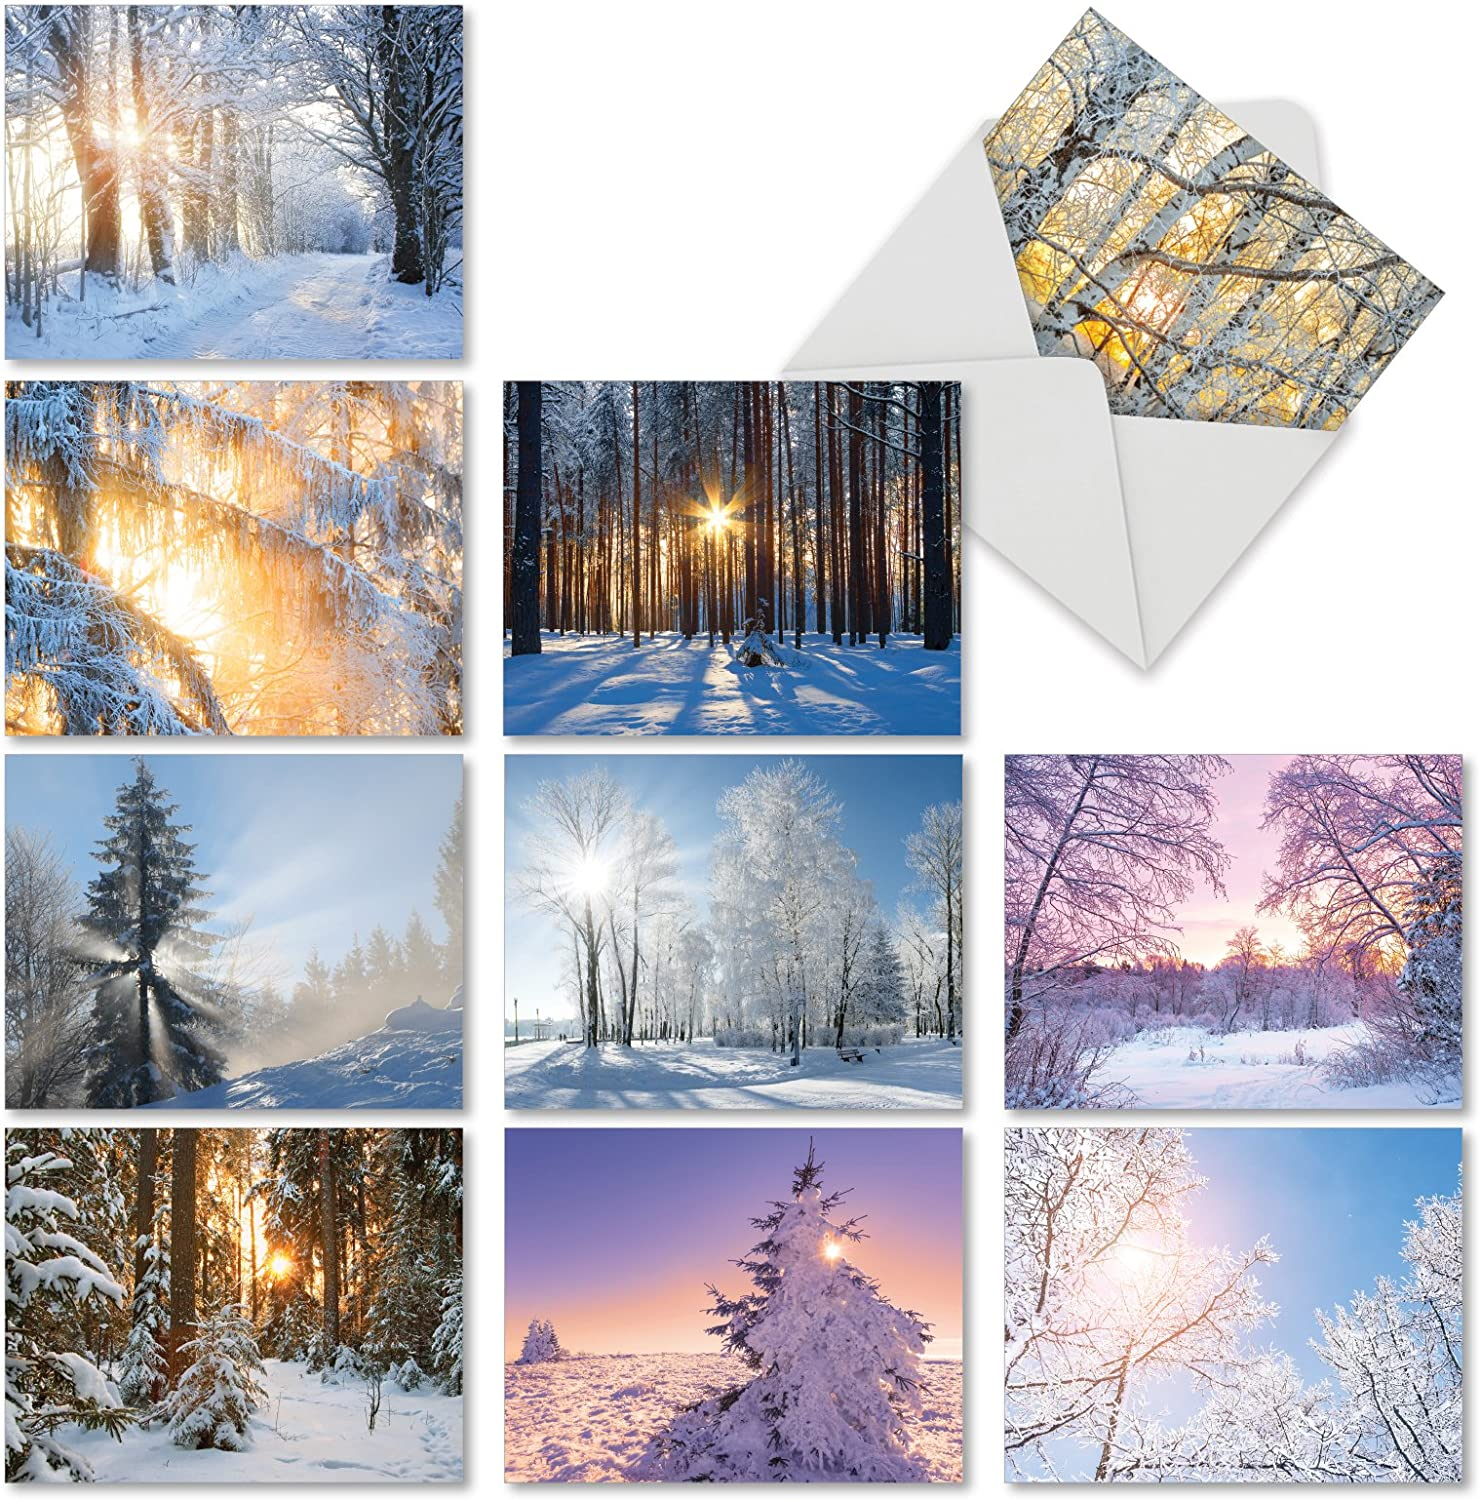 The Best Card Company - Christmas Sunrise - 10 Assorted Landscape Blank Xmas Cards with Envelopes (4 x 5.12 Inch) M6655XSB